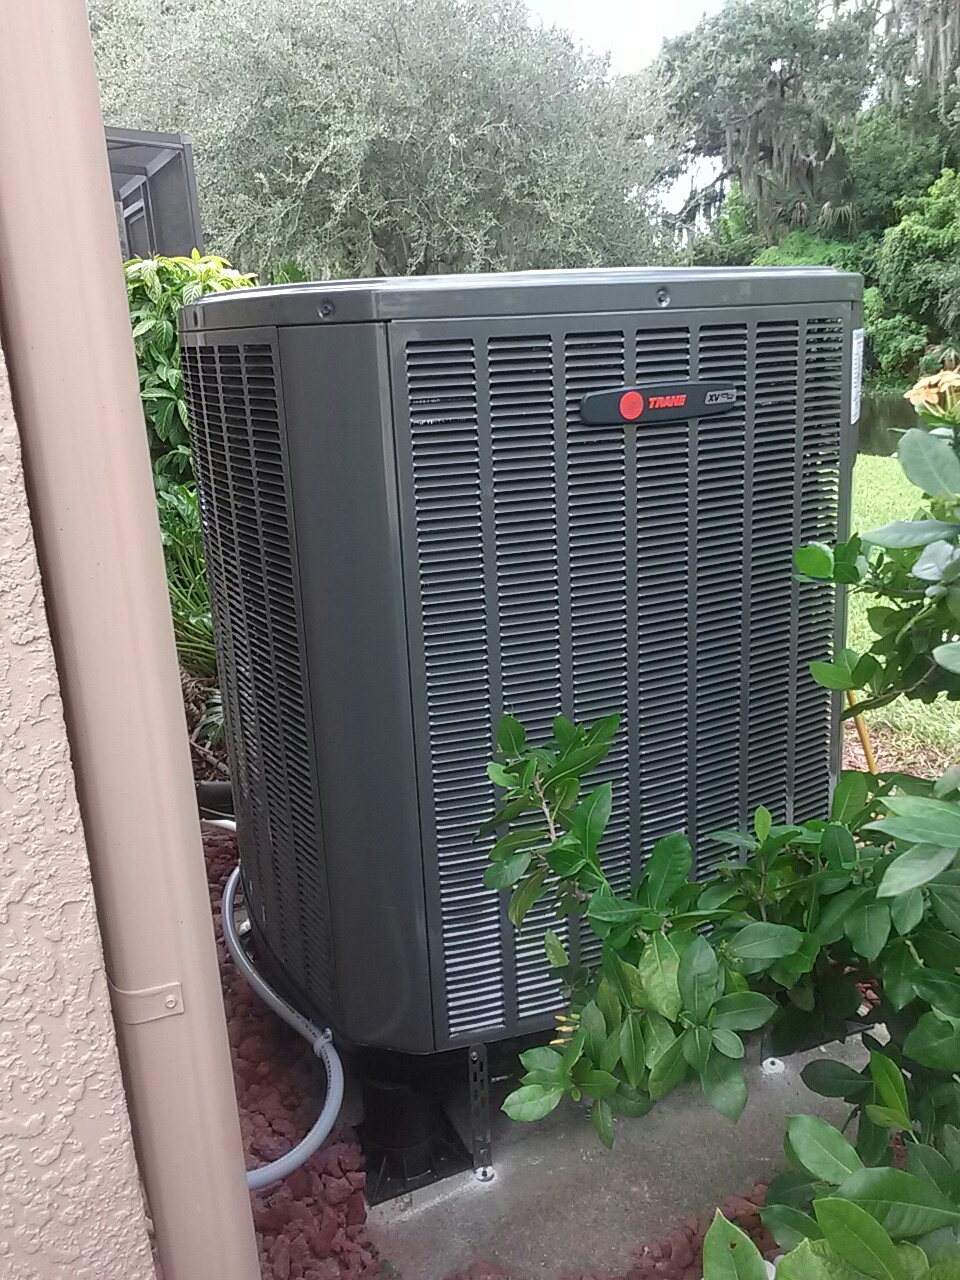 Melbourne, FL - Installation of Trane 4 ton true comfort variable speed heat pump AC system with Remy Halo air purifier and Trane cleaneffects air cleaner in West Melbourne Florida